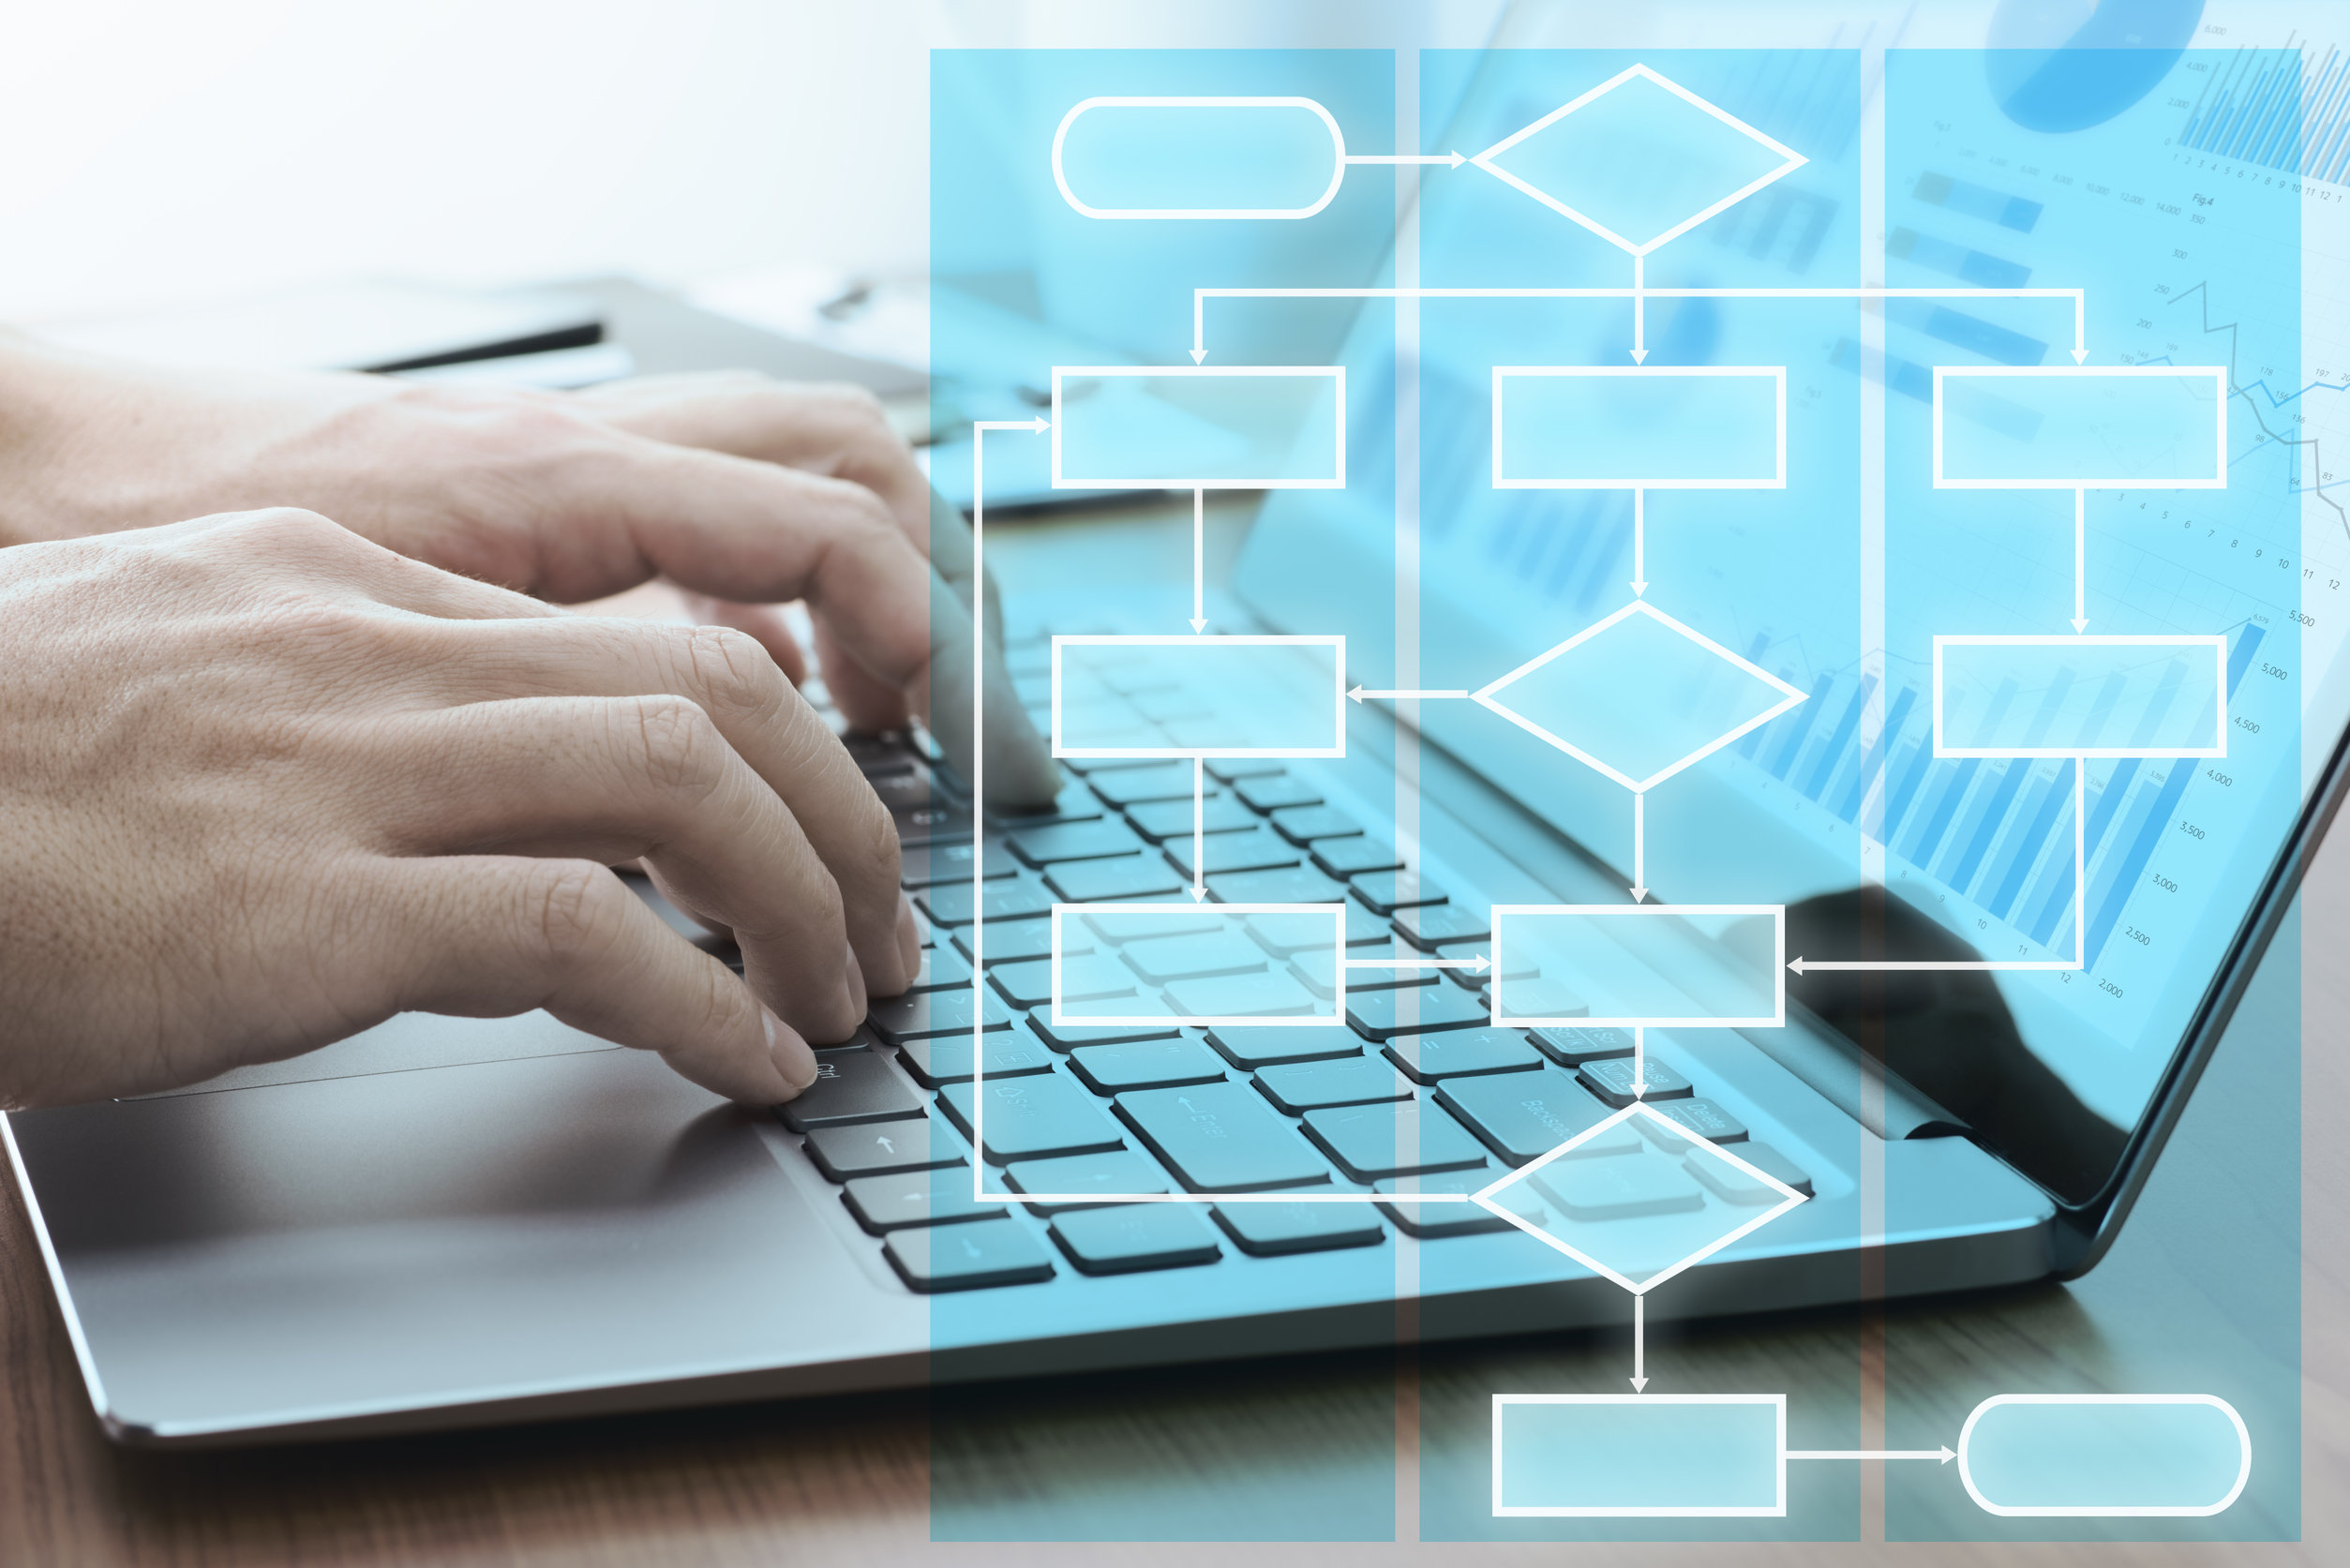 Workflow superimposed over photo of hands typing on laptop